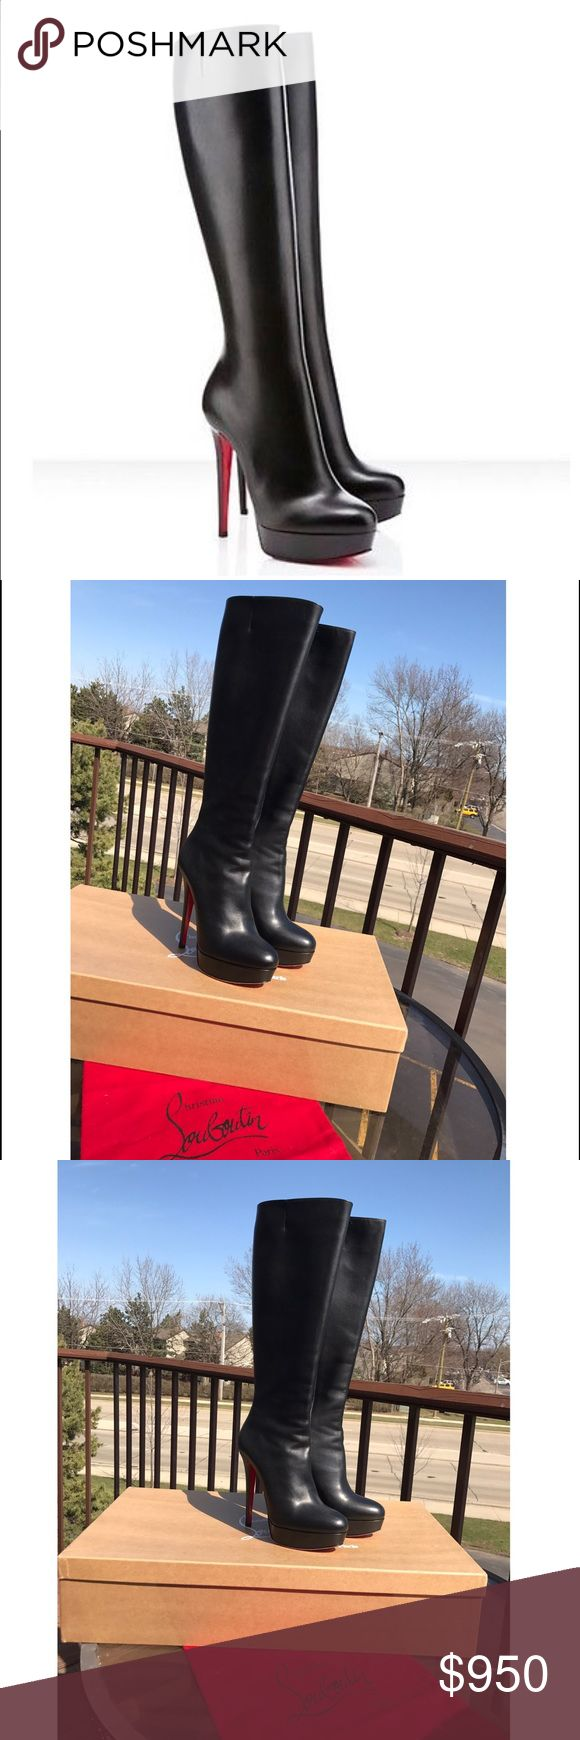 "Christian Louboutin Bianca Botta Platform Boot 5'3"" (14cm) heel; 1"" platform (size 39.5) I'm 38 and it also good for my size and it works for size 39 too. Really comfortable. Never worn. Brand new. I put already sole protection for you. If you have Louboutin you should know that it is perfect to always have it.  14"" calf circumference. Full-length side-zip closure. Calfskin leather upper, lining and sole. By Christian Louboutin; made in Italy. Salon Shoes. Christian Louboutin Shoes Heeled…"